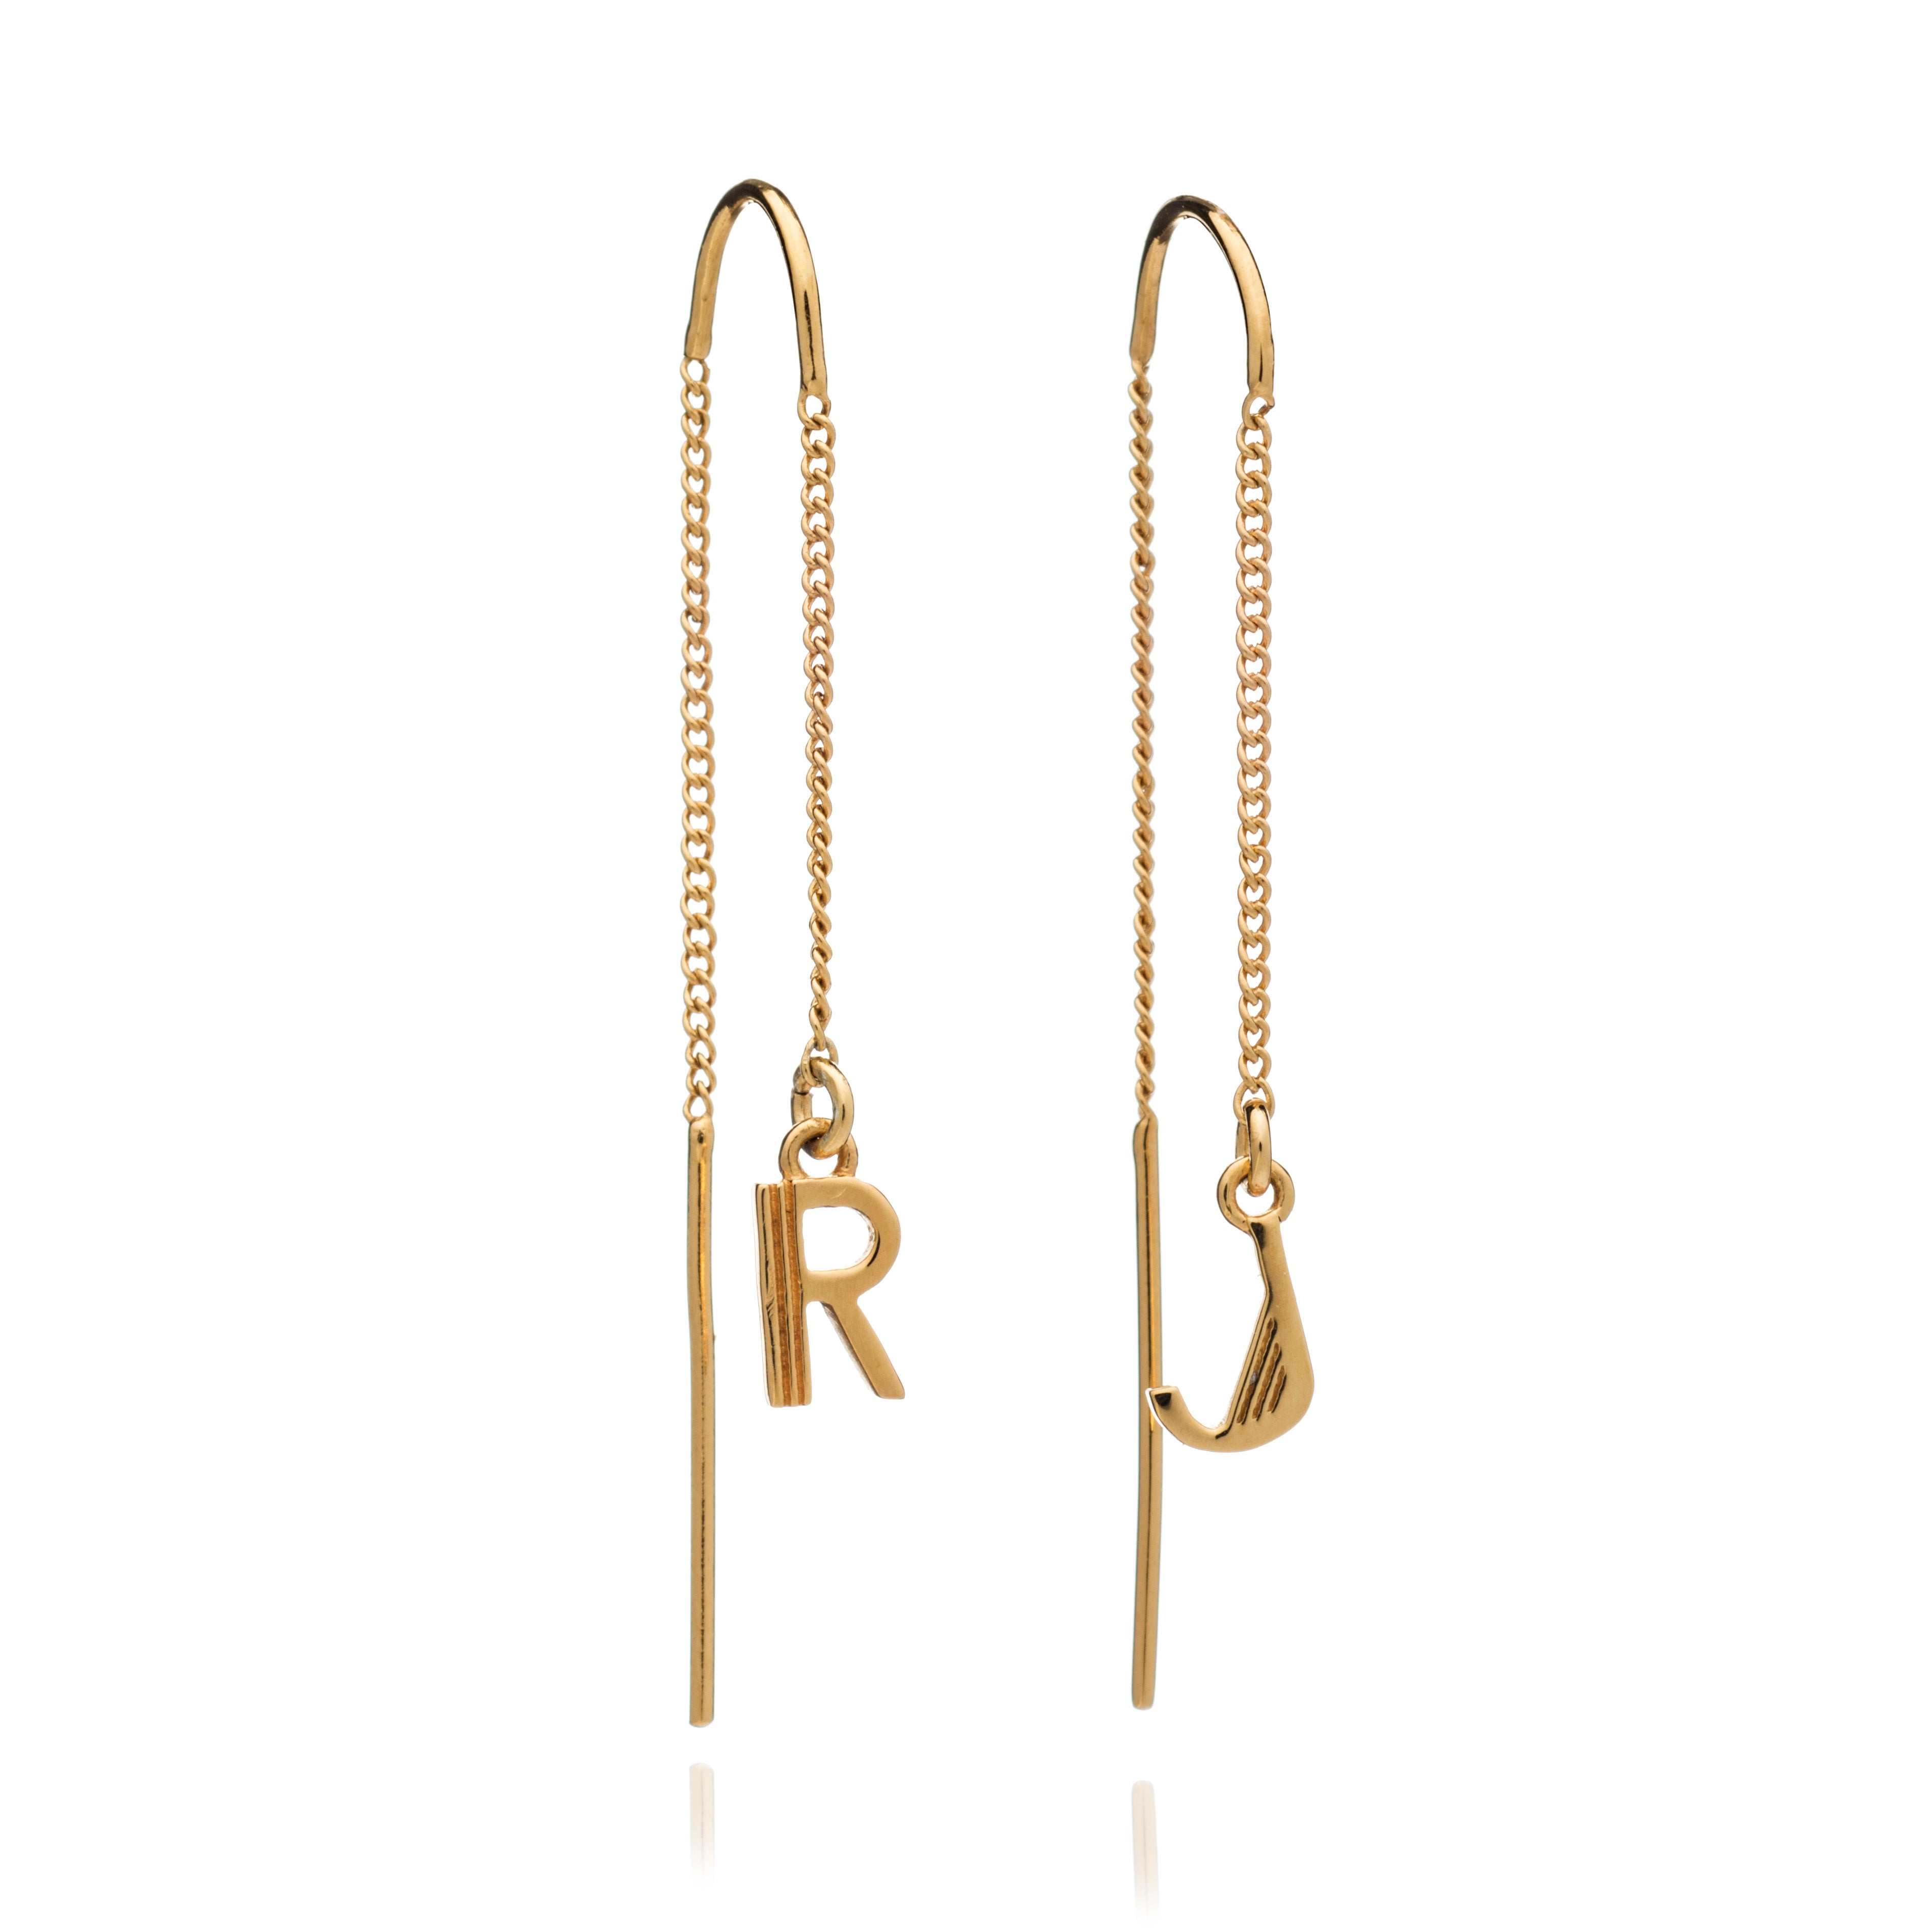 Initial Threader Earrings in Gold